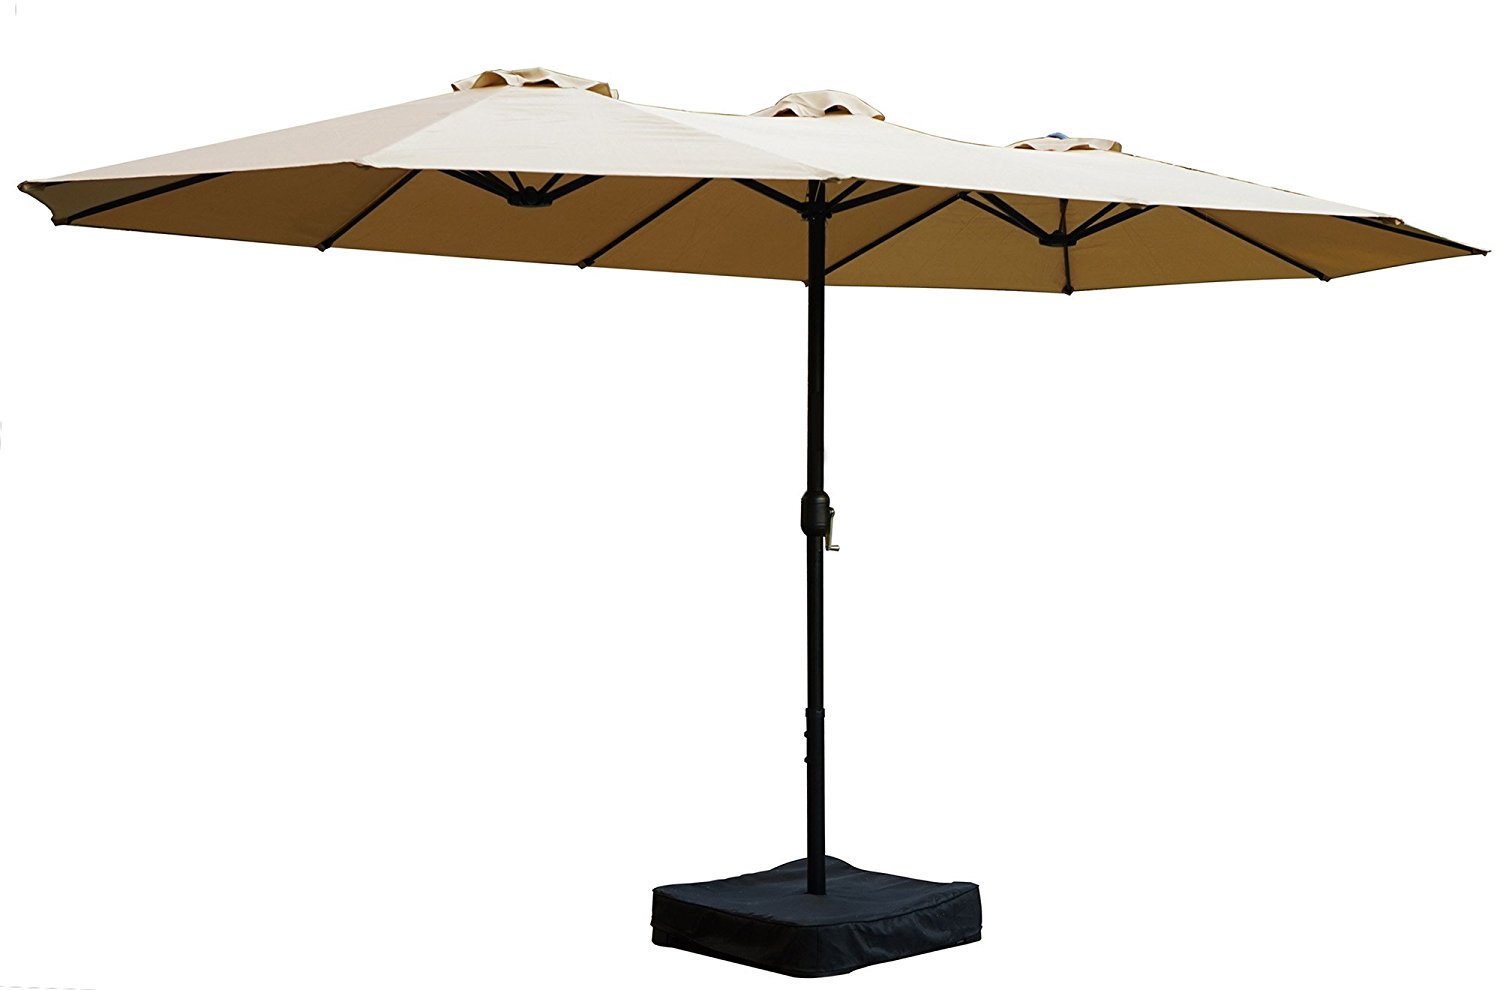 Review of Kozyard Butterfly 14' Outdoor Patio Double-Sided Aluminum Umbrella (with Crank and Base)